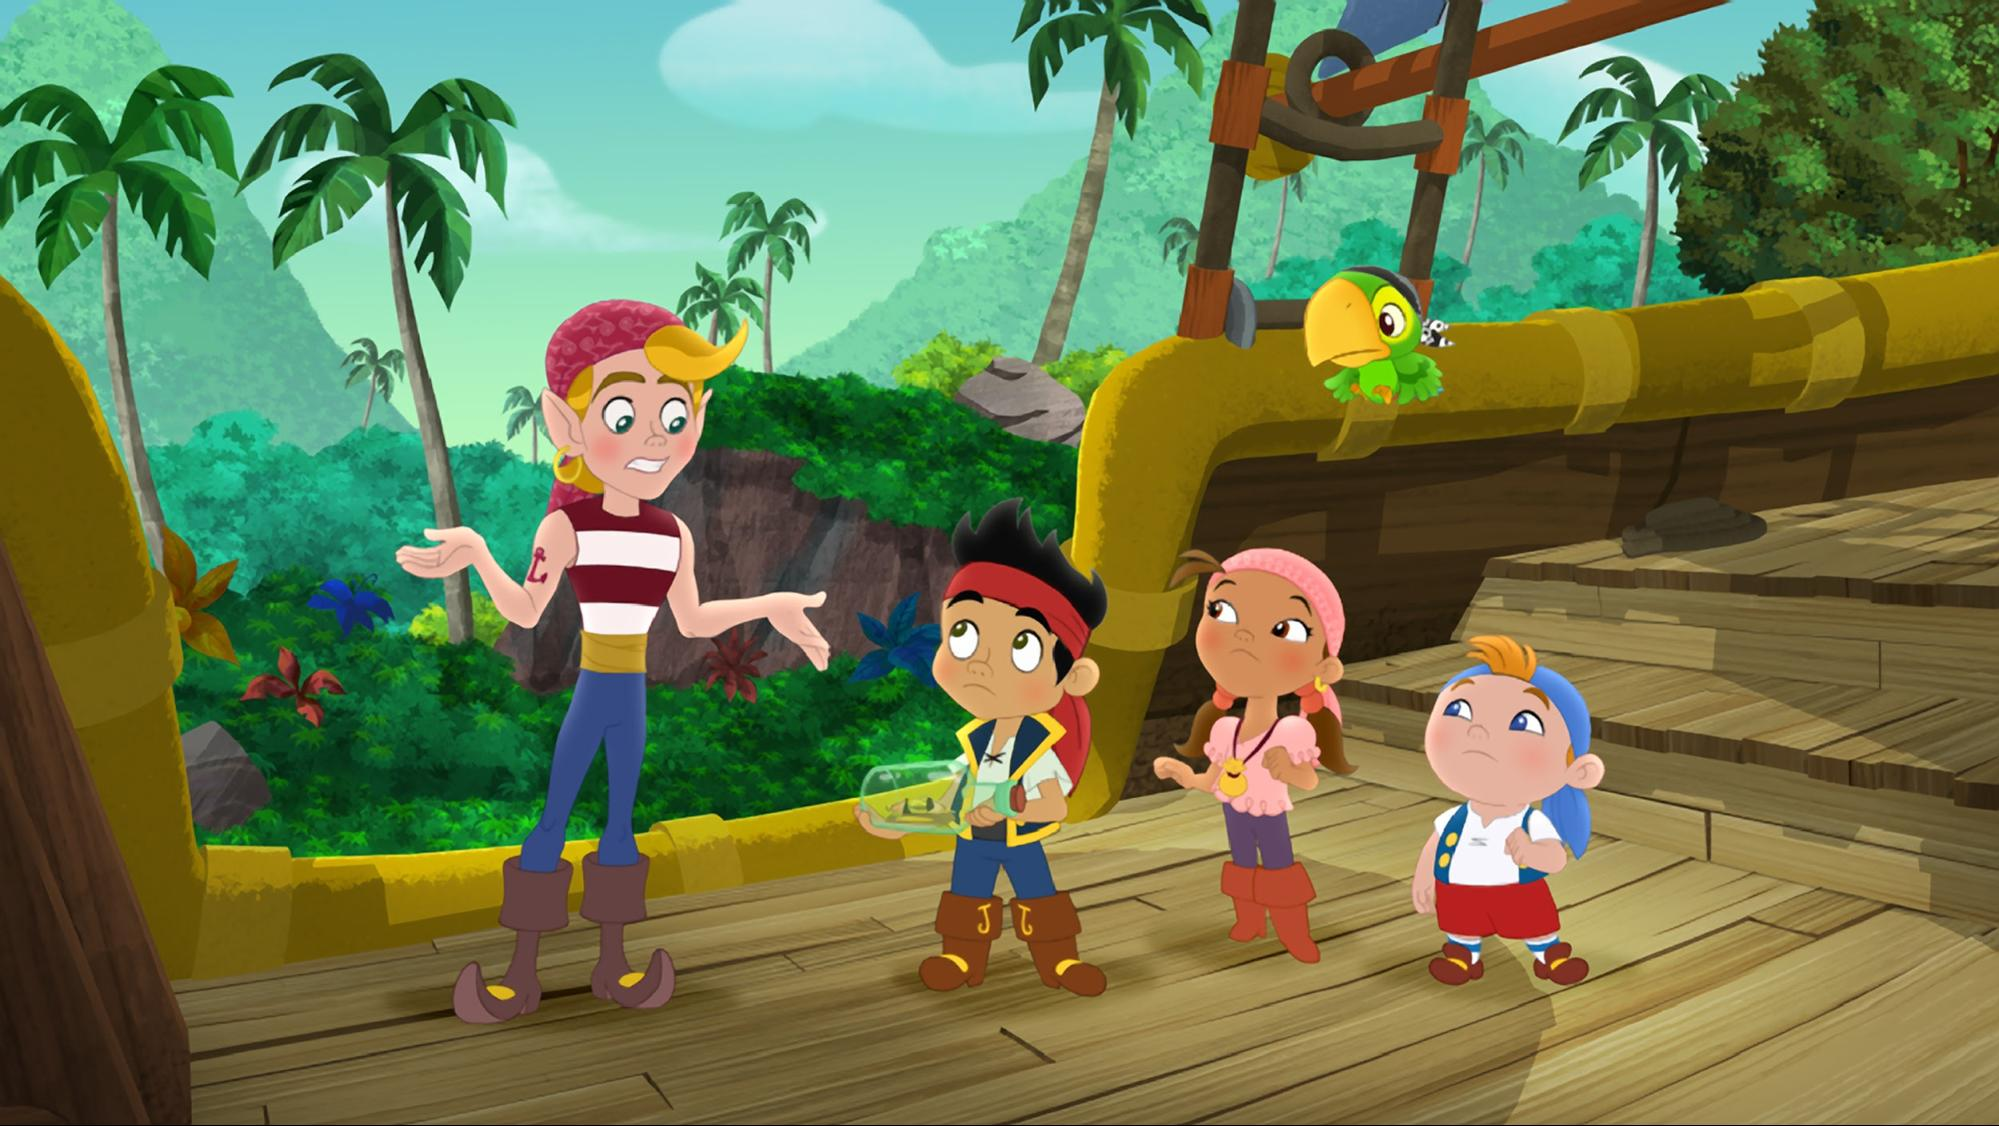 Best Shows For Toddlers - Jake and The Neverland Pirates